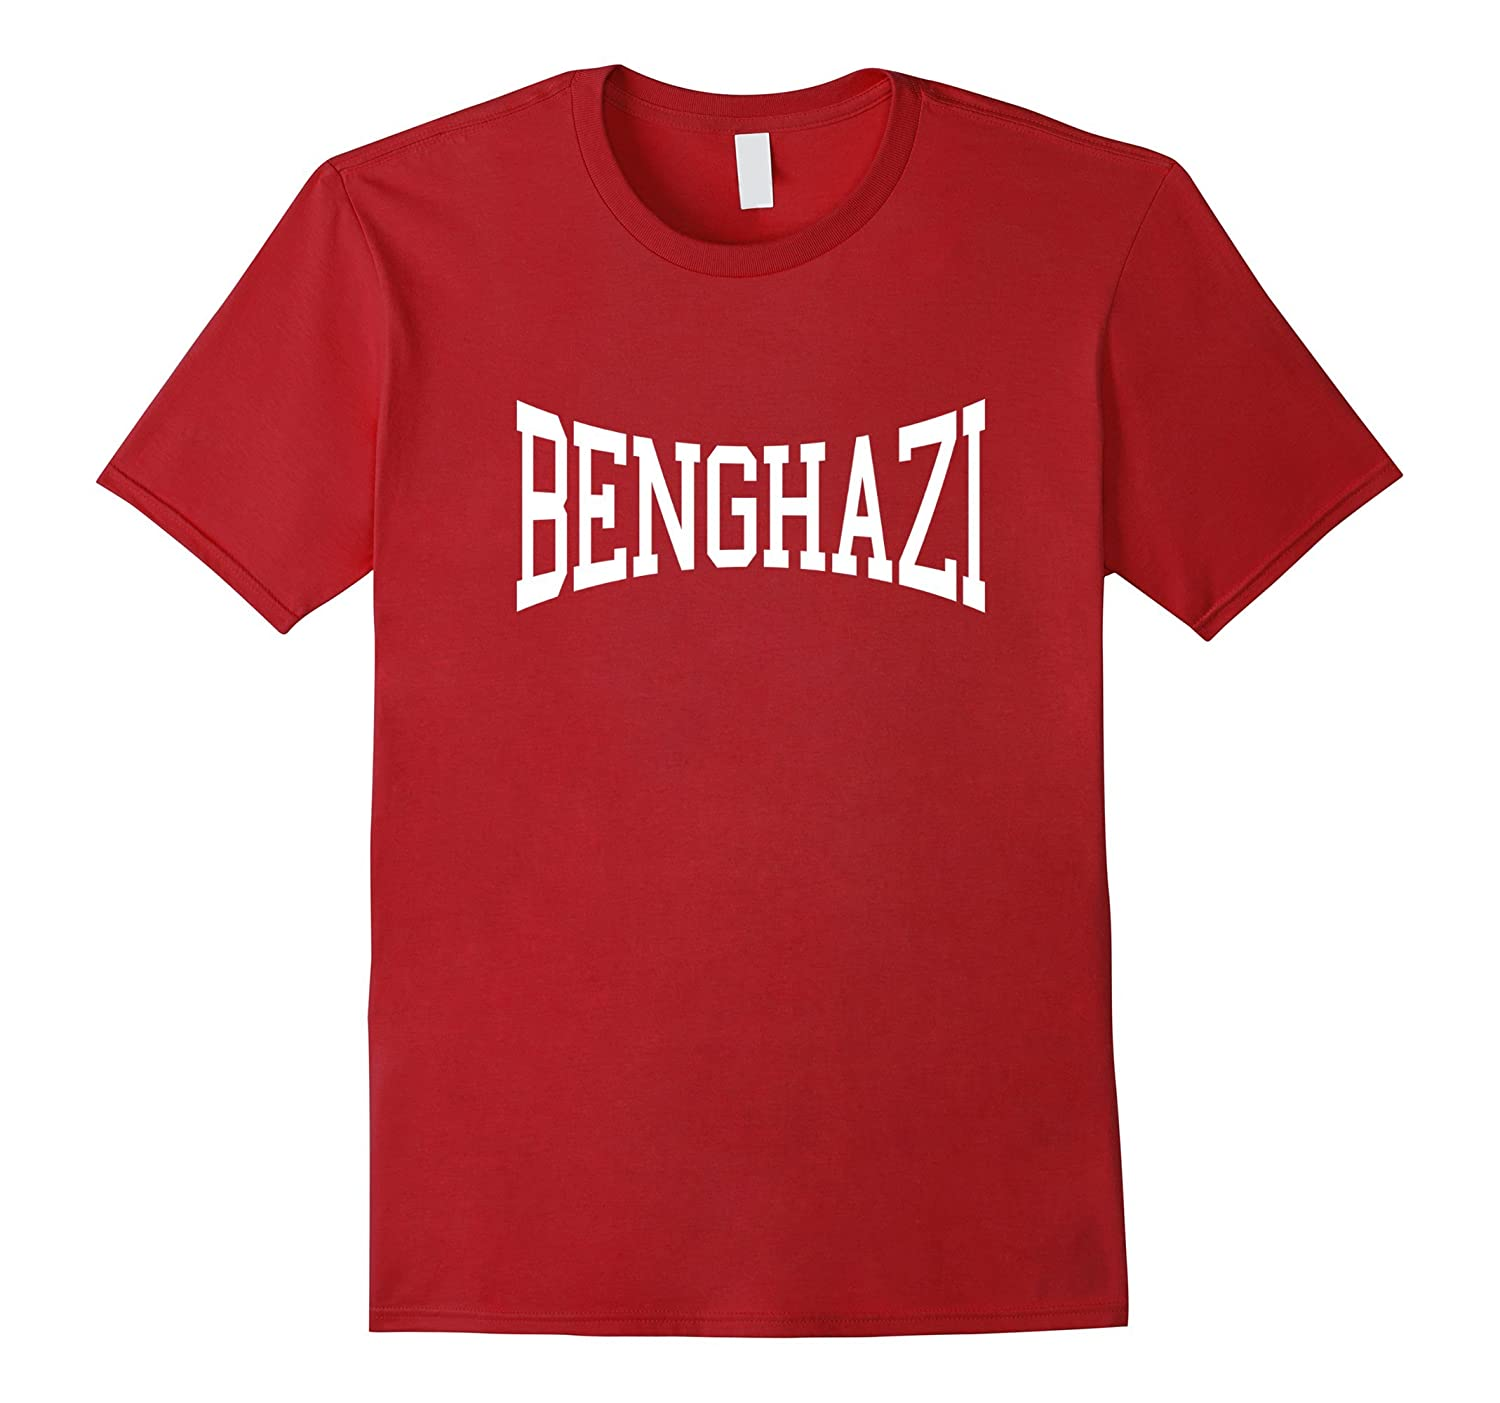 Benghazi Arched Text T-Shirt